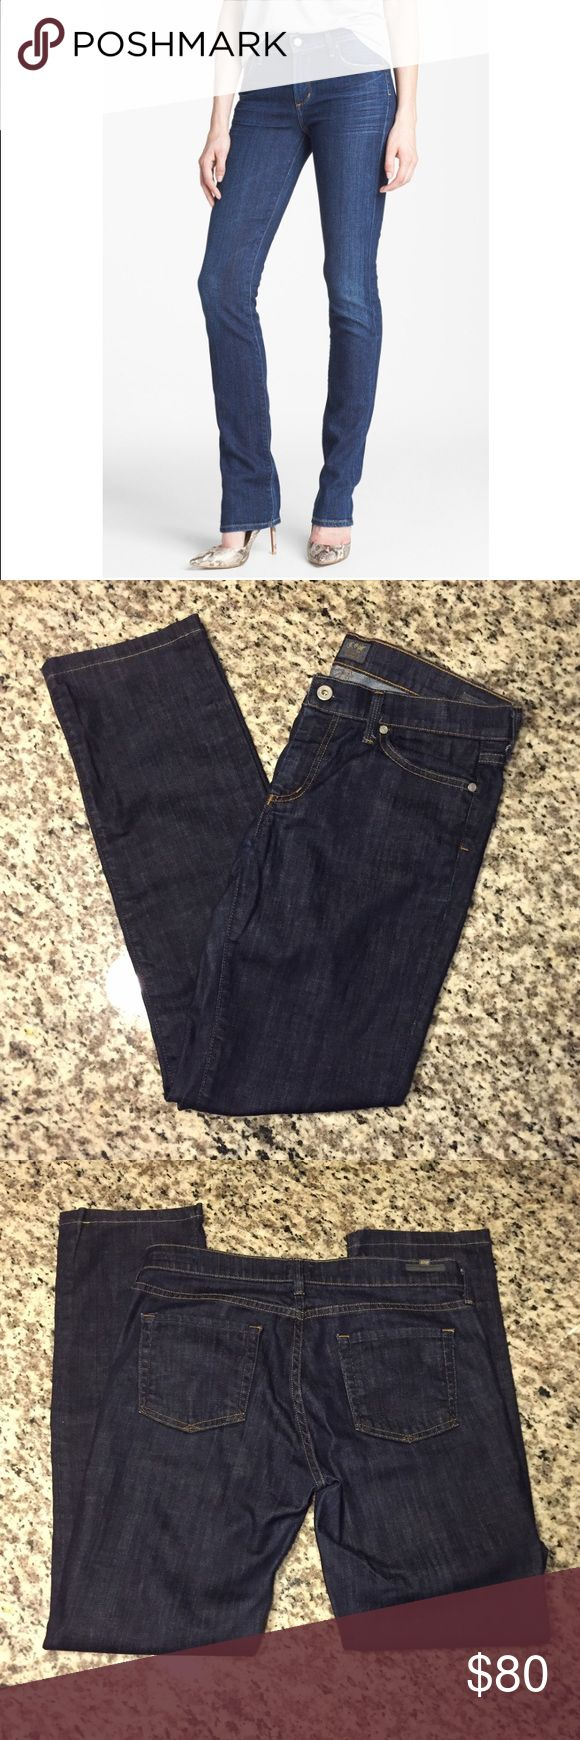 "🔥flash sale🔥 CoH 'Elson' Mid rise straight leg Awesome CoH Citizens of Humanity midrise straight leg jeans. These have been hemmed, but are in perfect condition. Inseam- 30"" waist -16"".   Open to reasonable offers, please no low balls :) Citizens of Humanity Jeans Straight Leg"